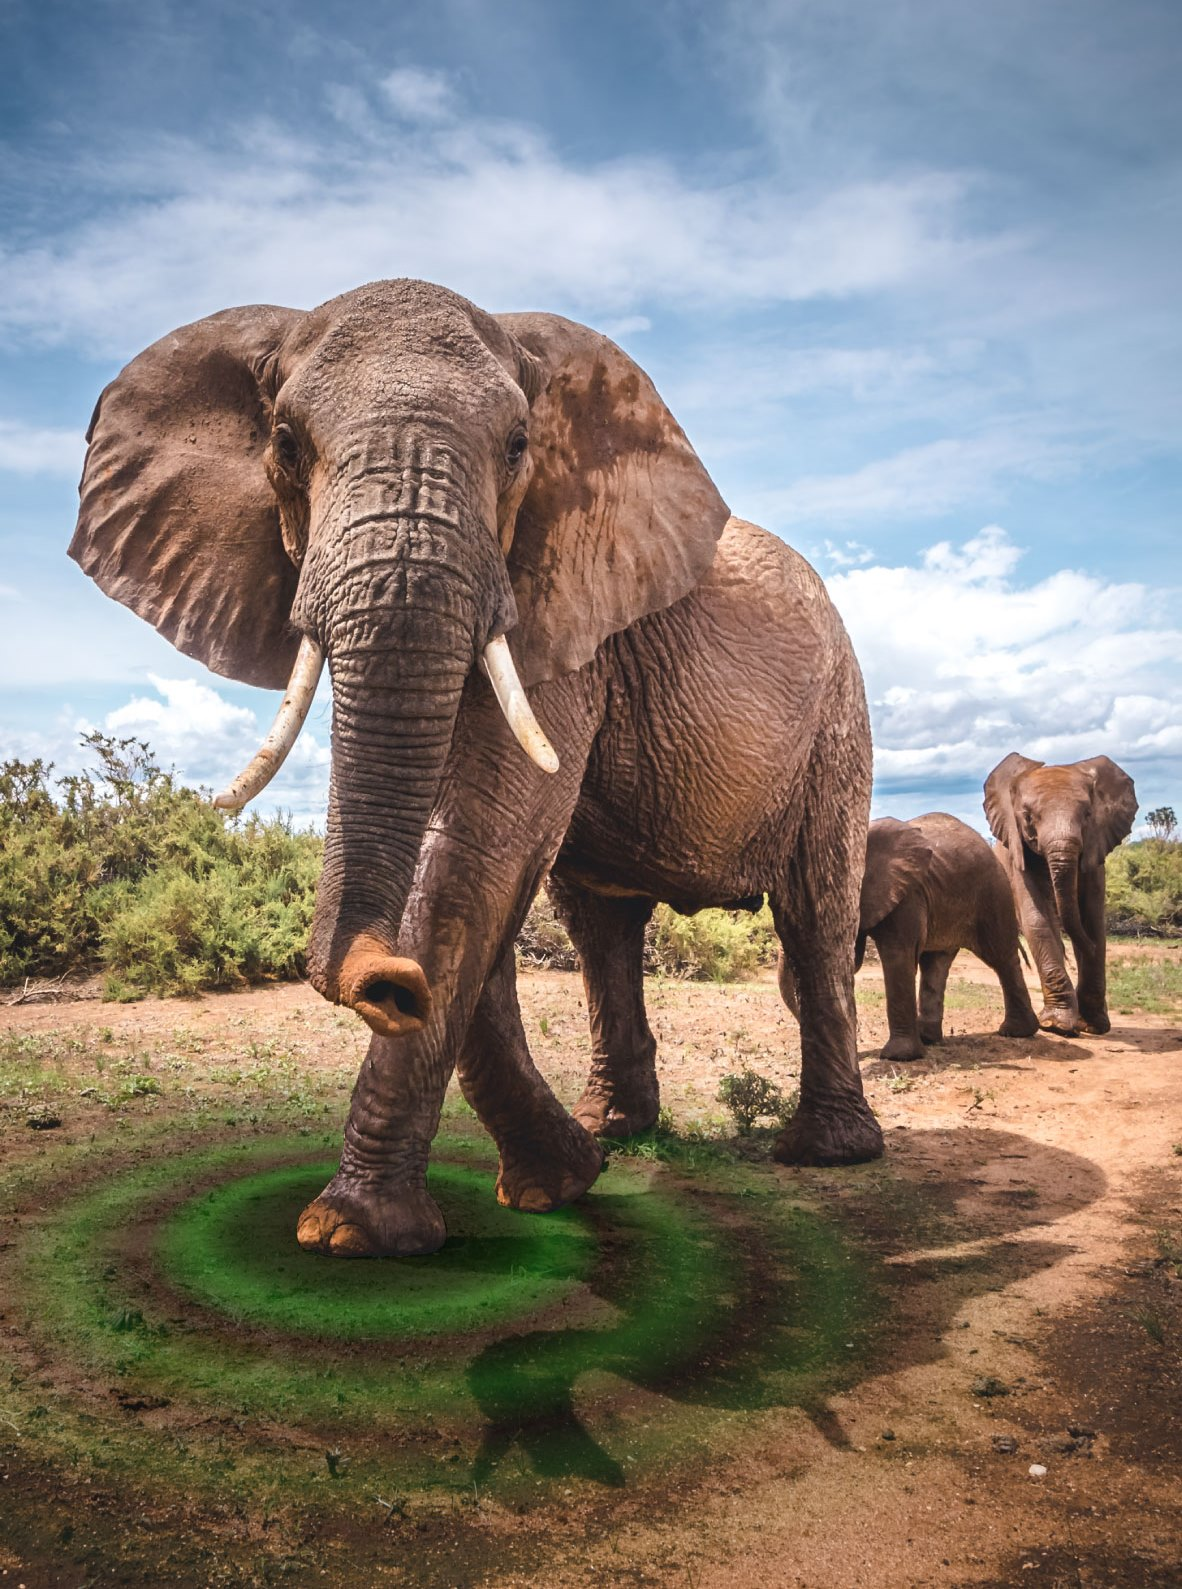 The study found that vibrations generated by low-frequency rumbles were generally stronger than those produced by vibrations from walking. The researchers hope to eventually be able to use seismic vibration patterns to remotely determine elephant behavior.